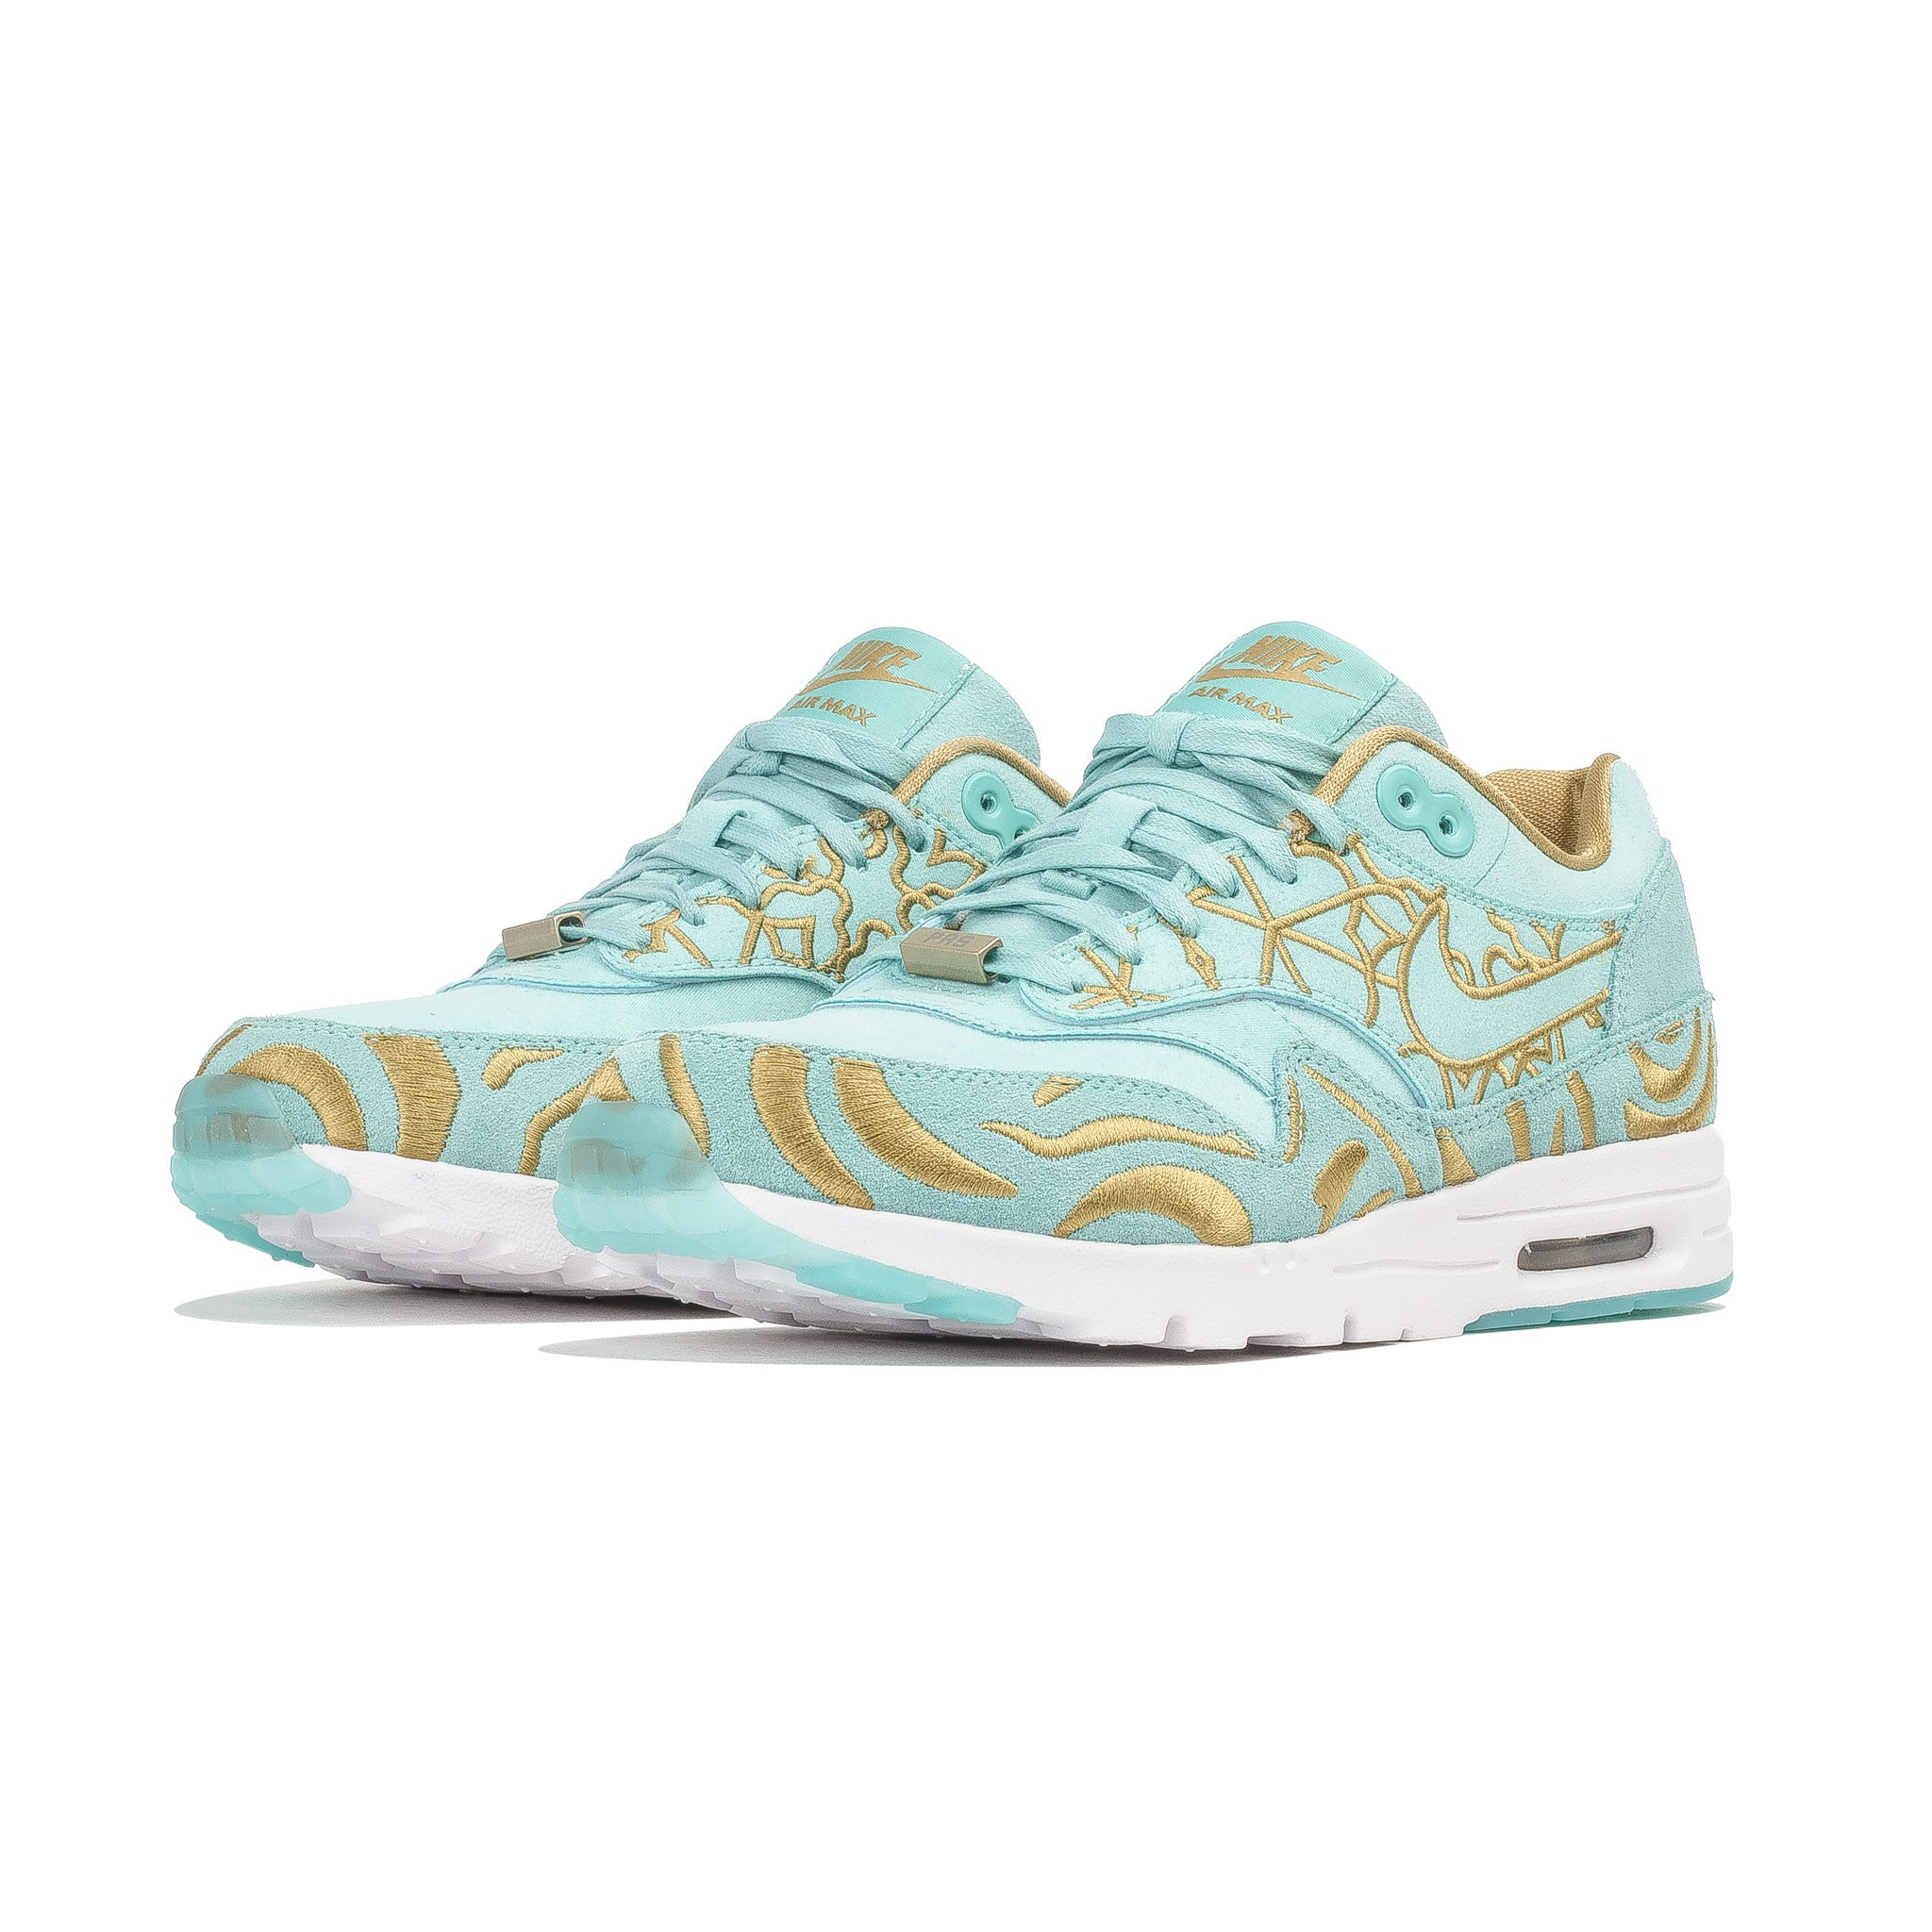 WMNS Air Max 1 Ultra LOTC QS 747105-300 Paris